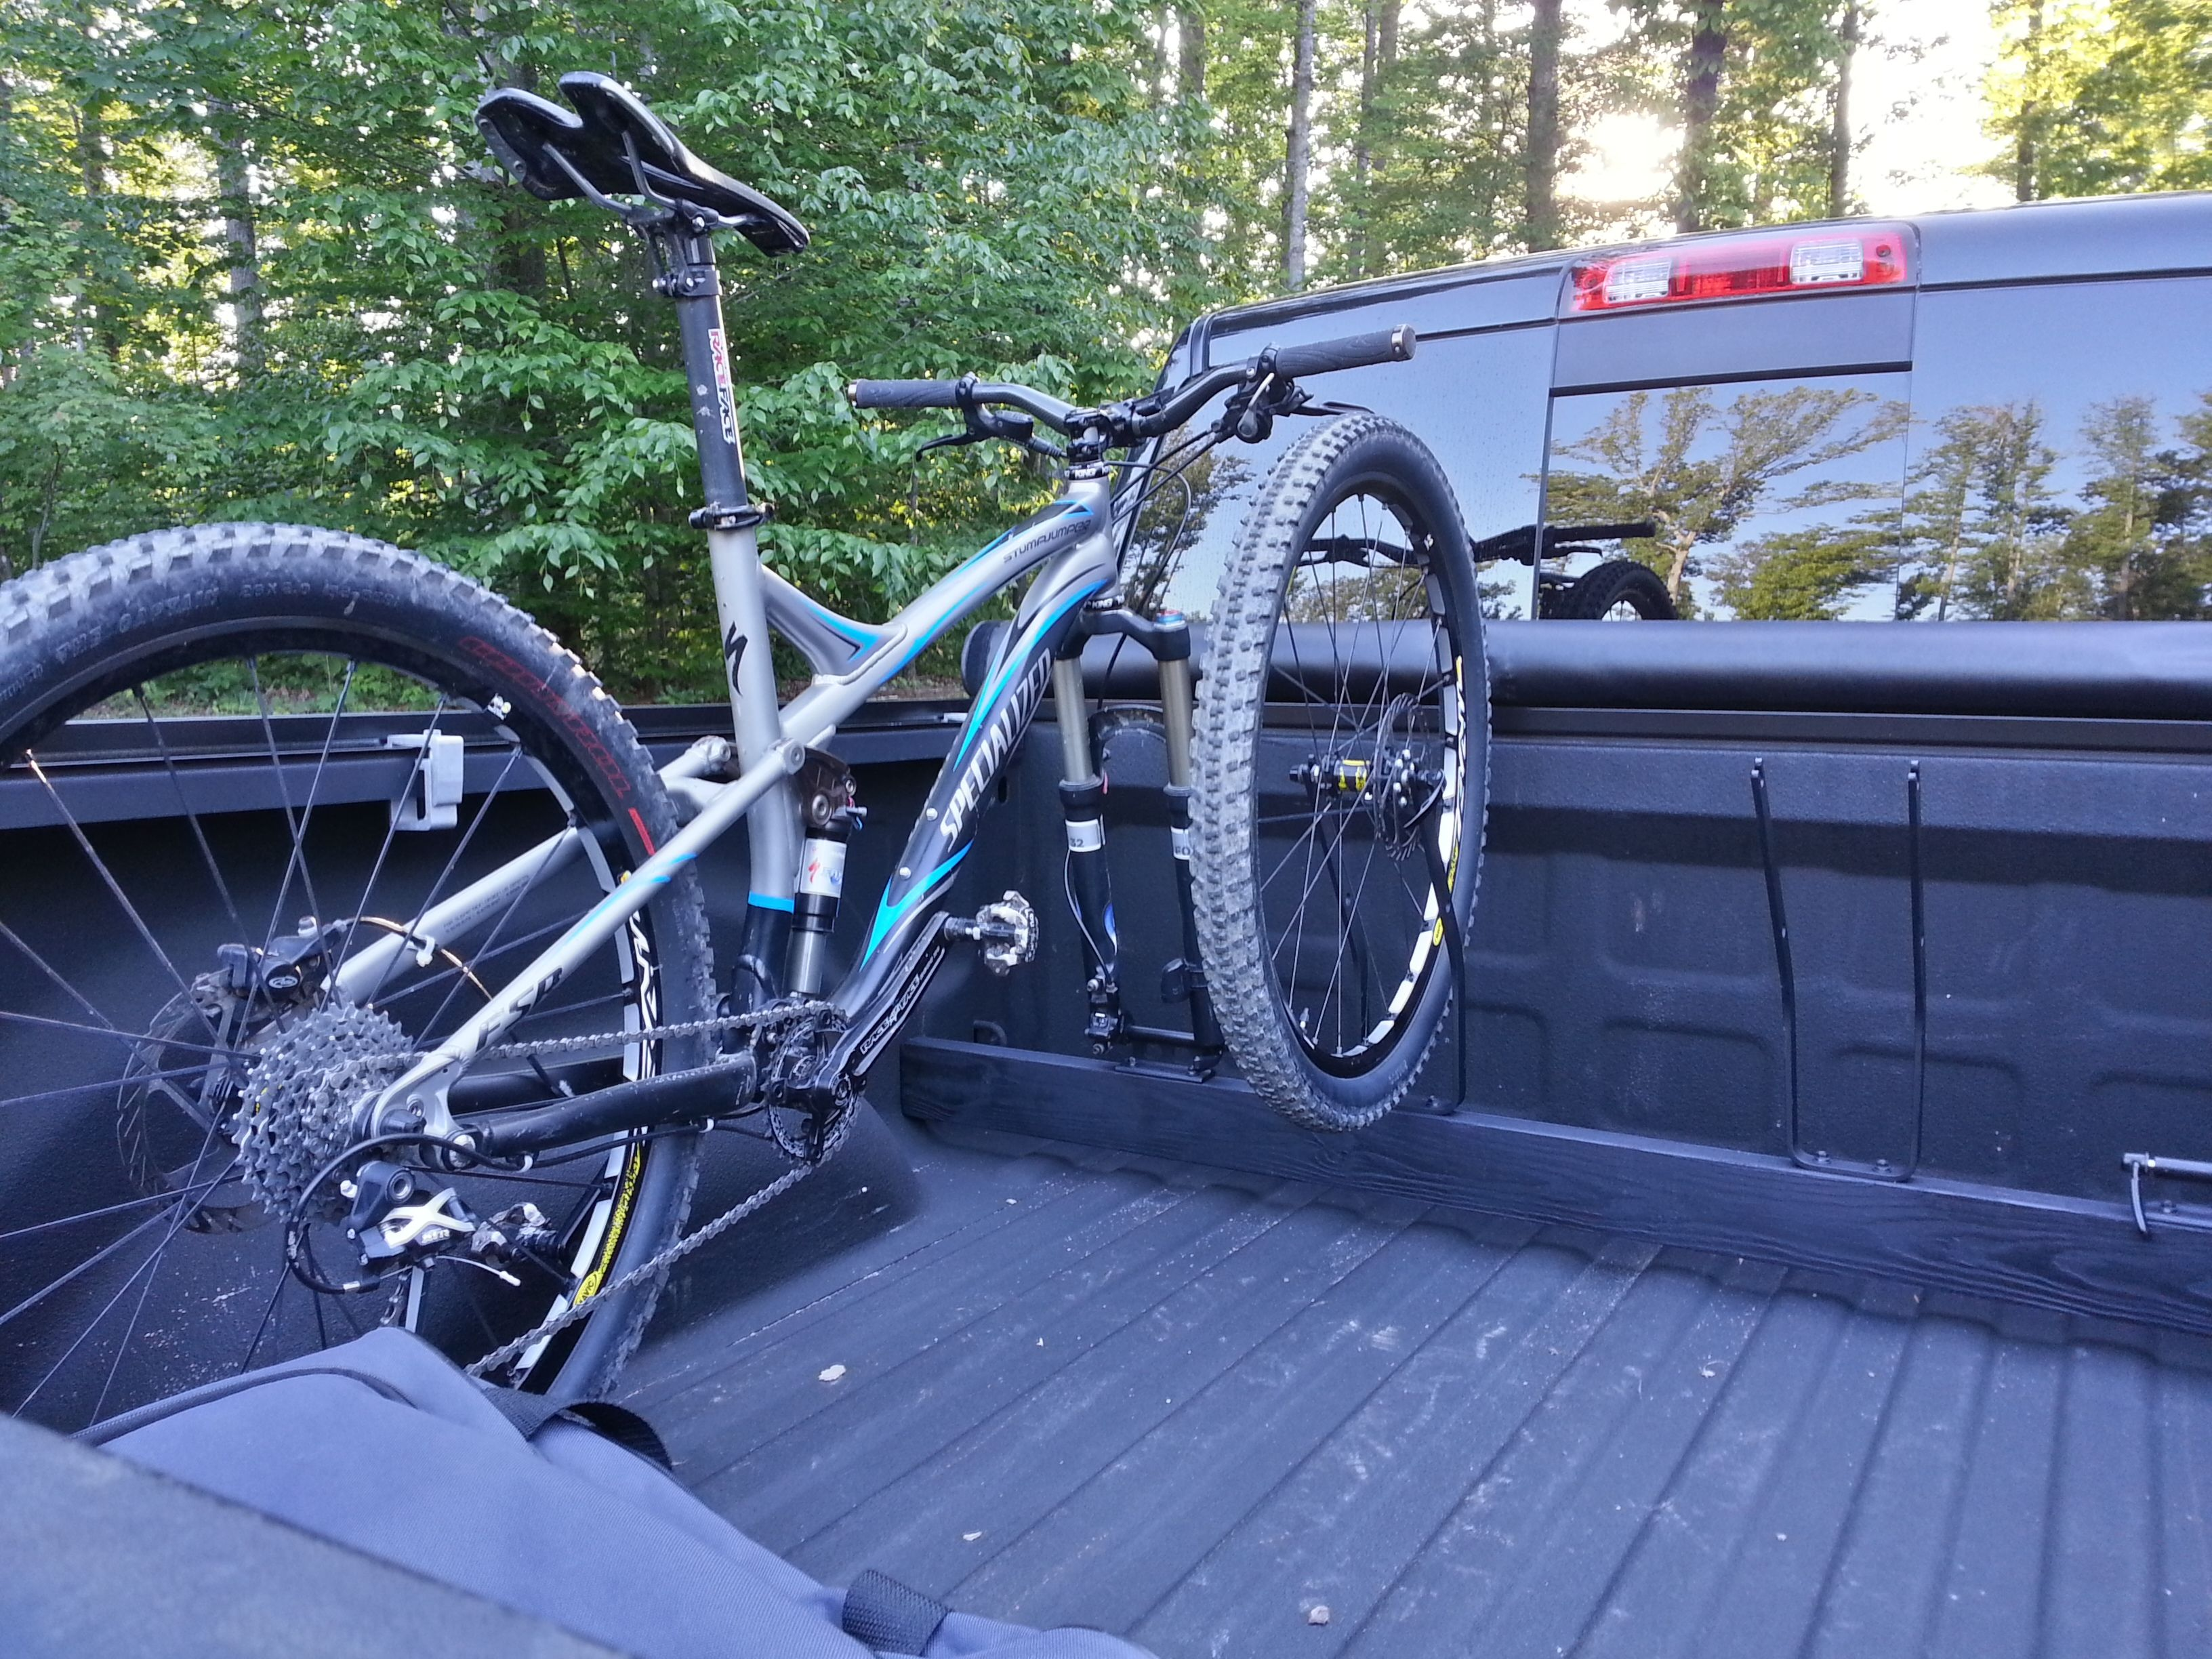 Best Way To Transport Bike In Truck Bed Probably A Stupid Question Mtb Truck Bed Bike Trucks